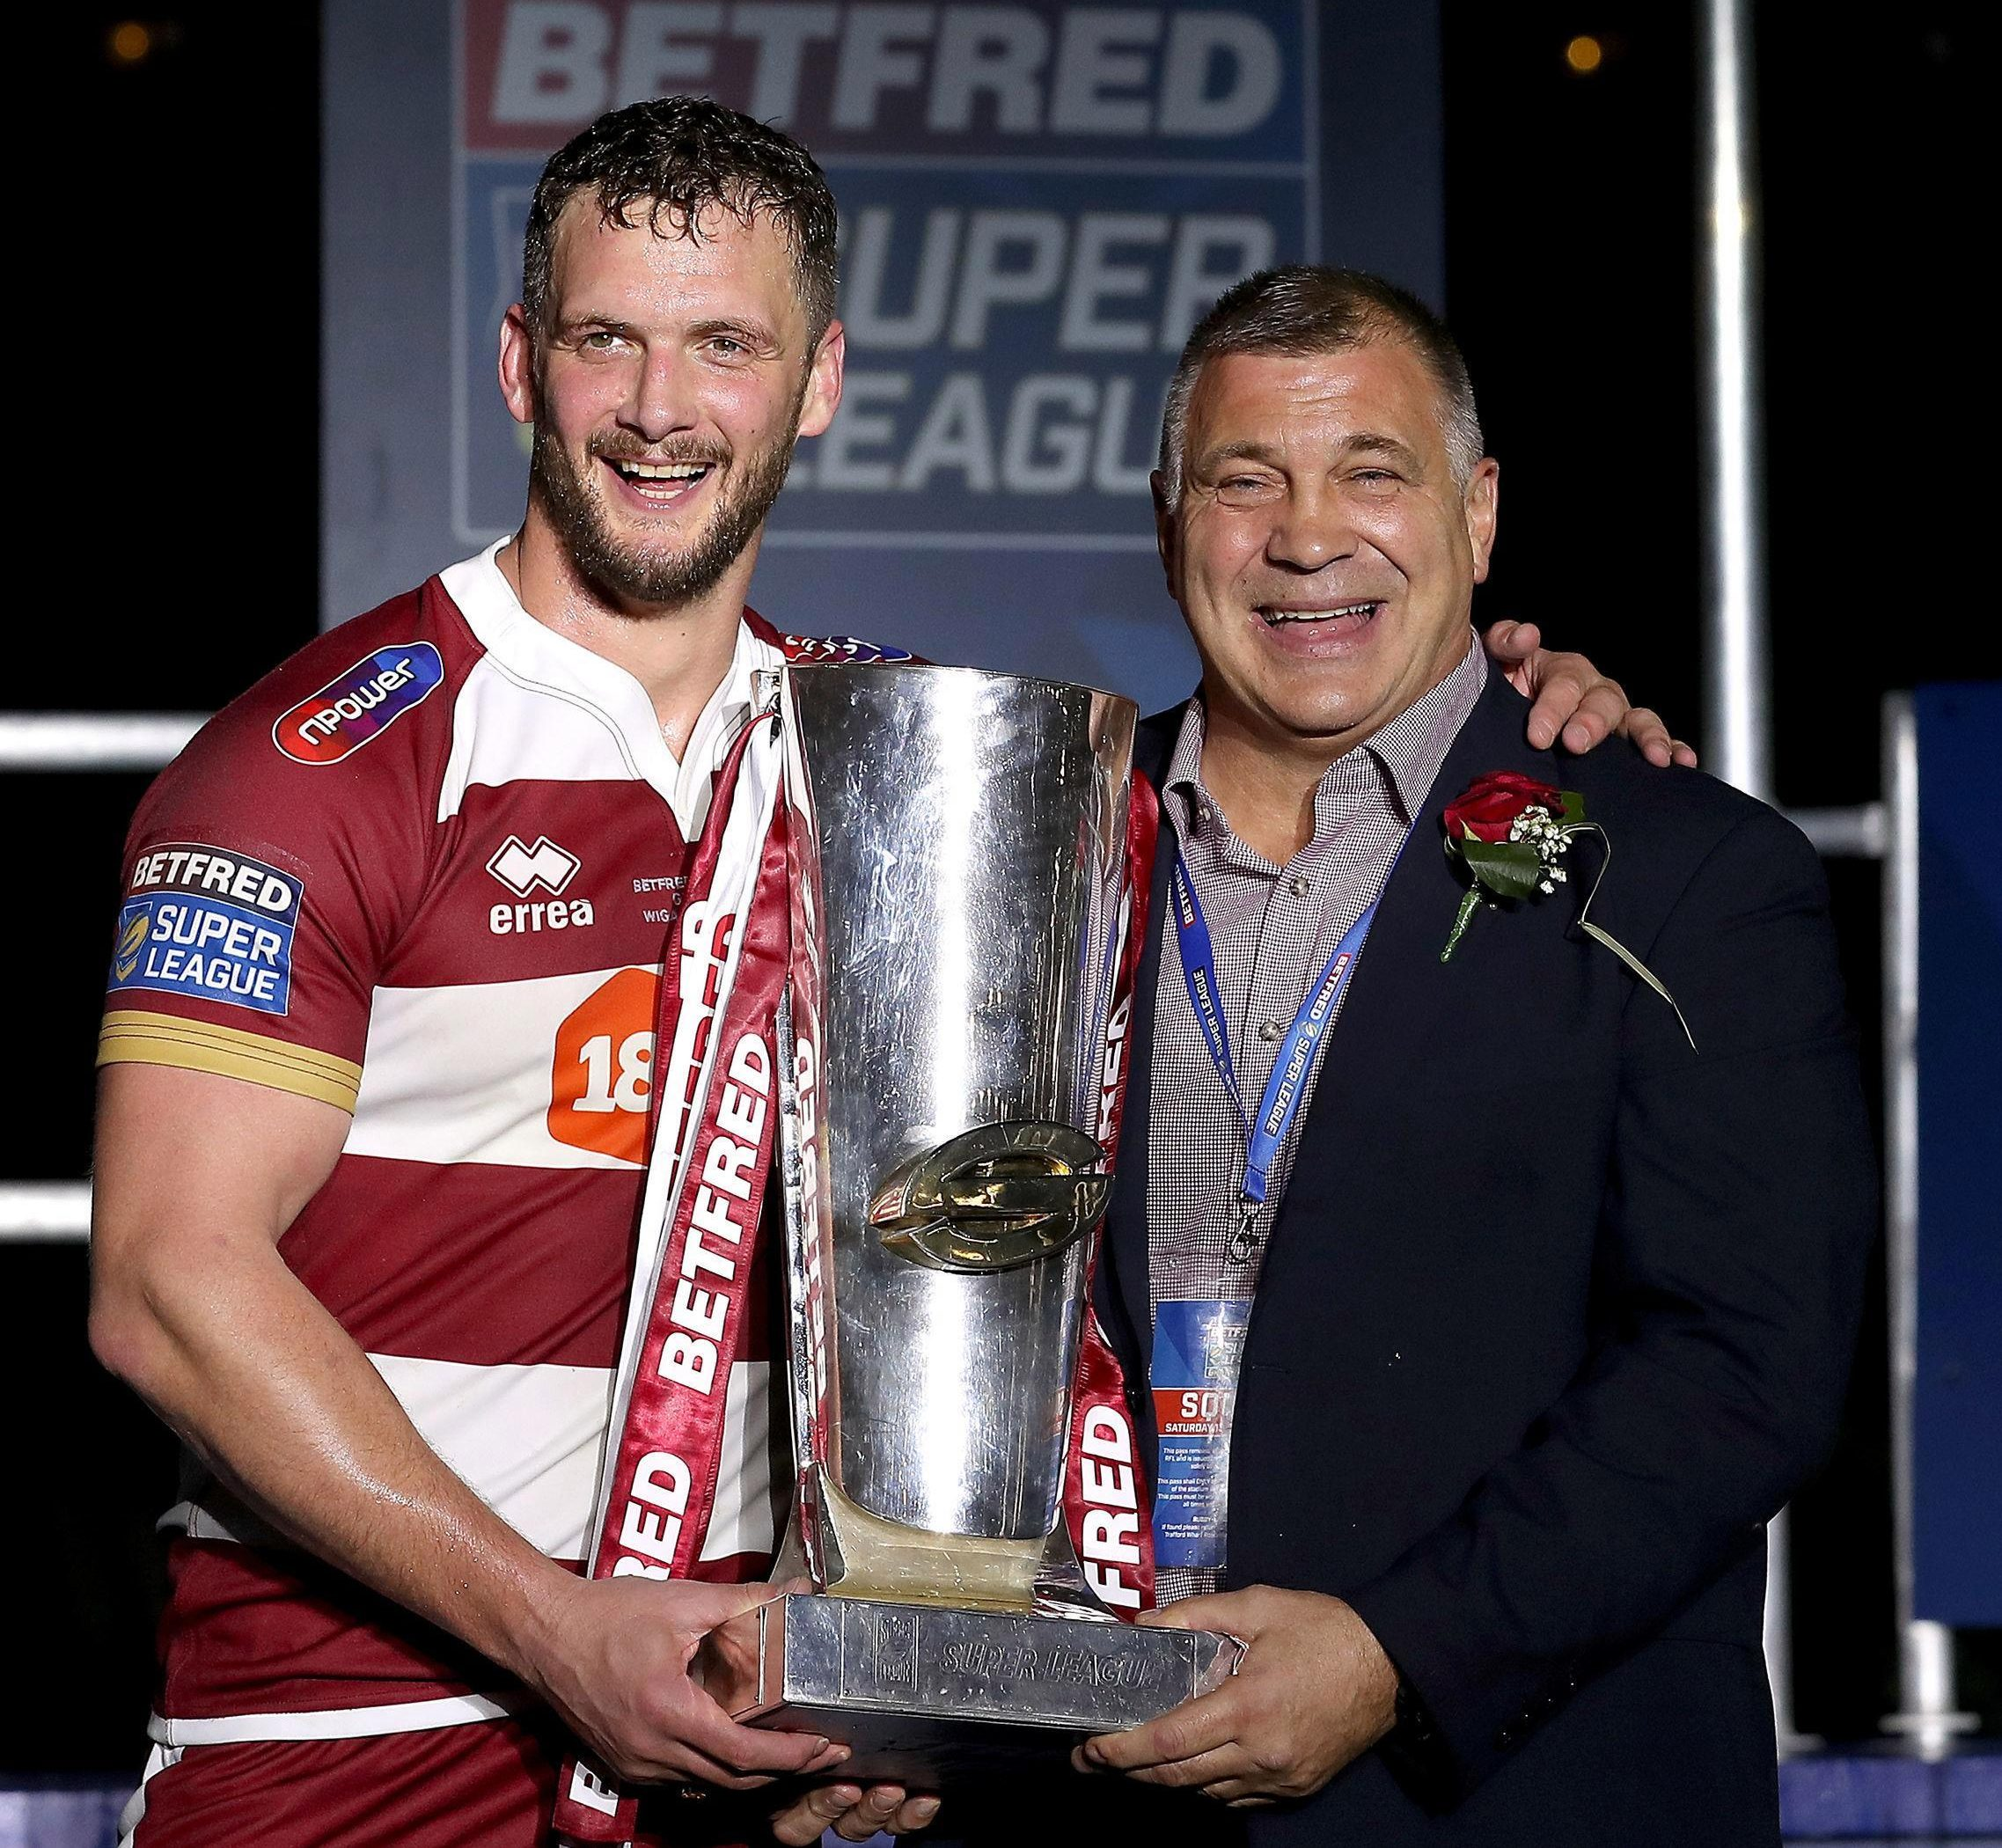 Wigan skipper Sean O'Loughlin, left, lifted the Super League trophy this year